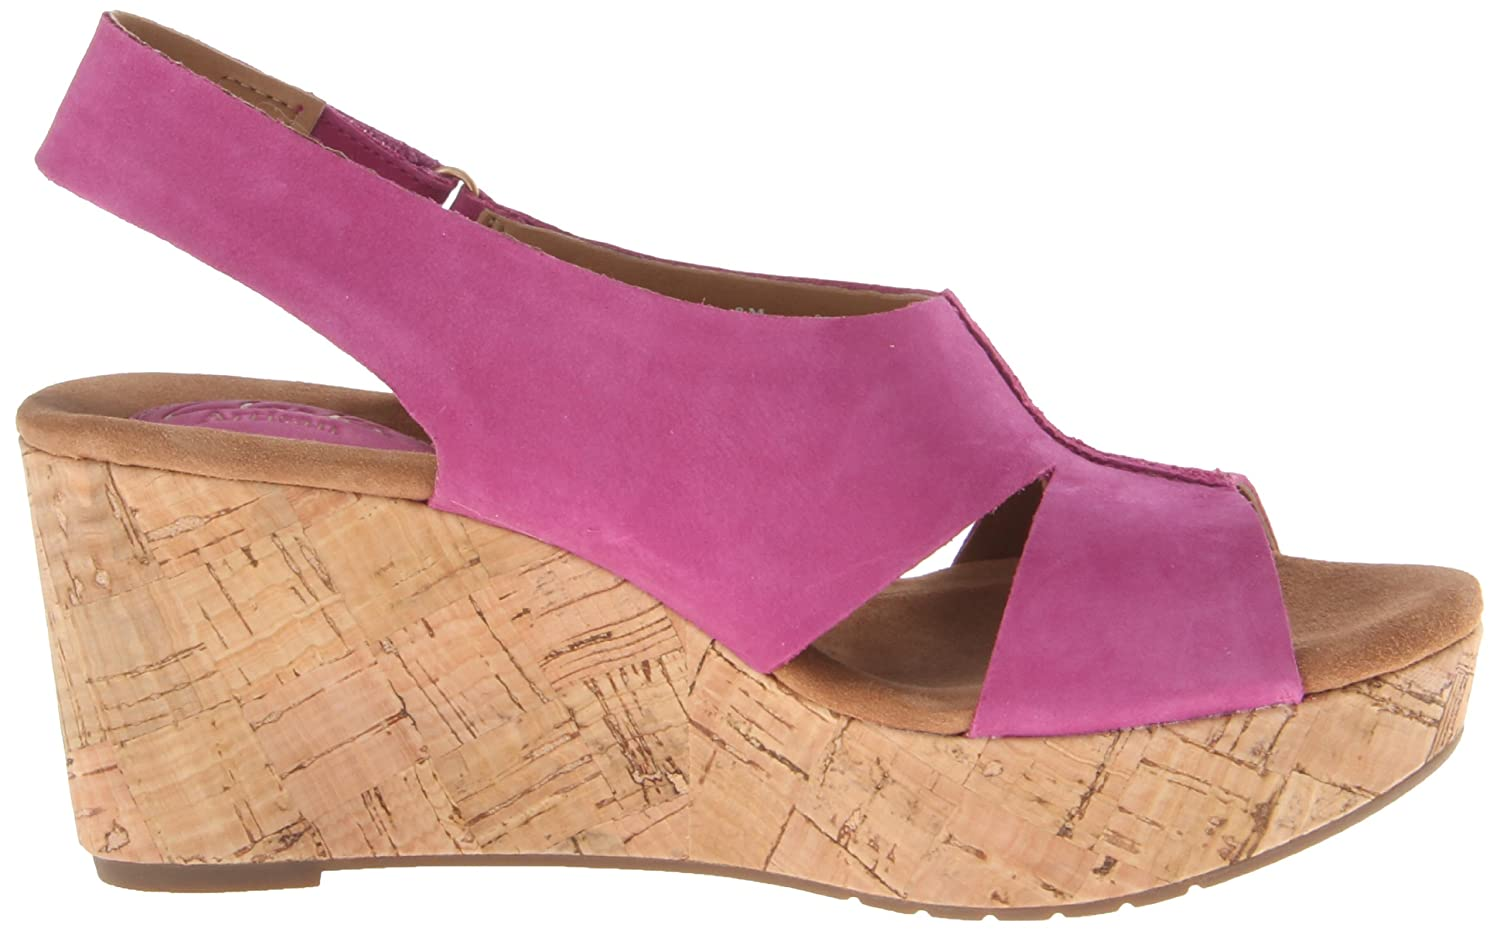 Amazon.com | Clarks Women's Caslynn Lizzie Wedge Sandal, Fuschia, 6.5 W US  | Platforms & Wedges